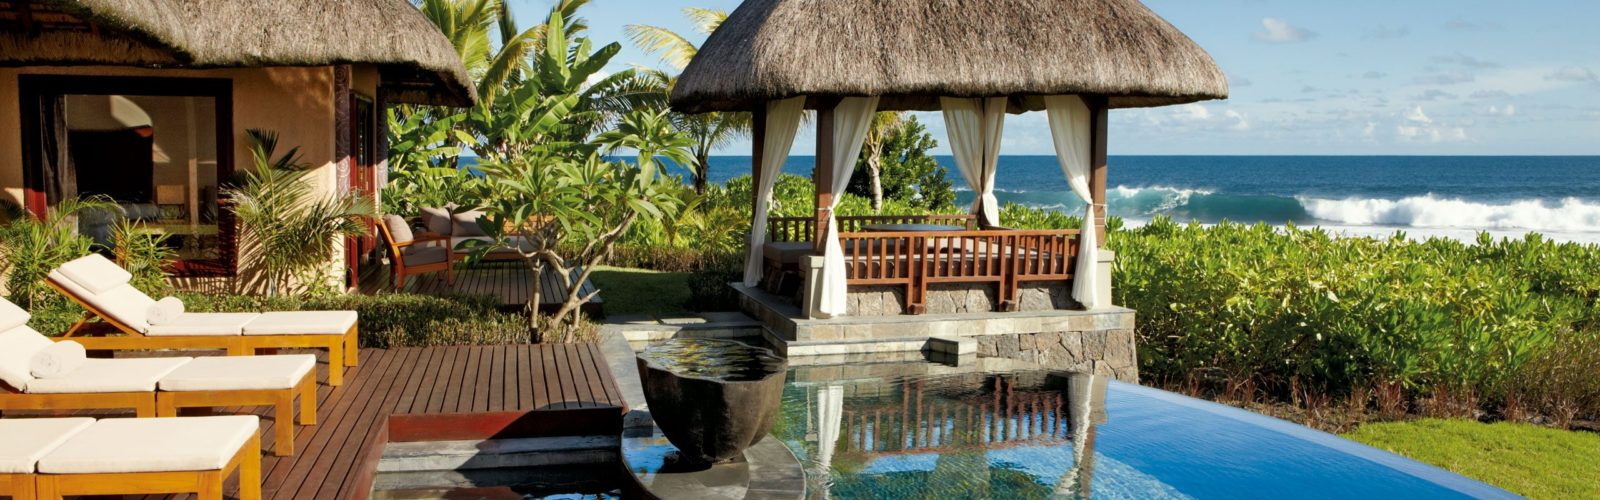 The pool and terrace of a two-bedroom villa at the Shanti Maurice, Mauritius, Africa